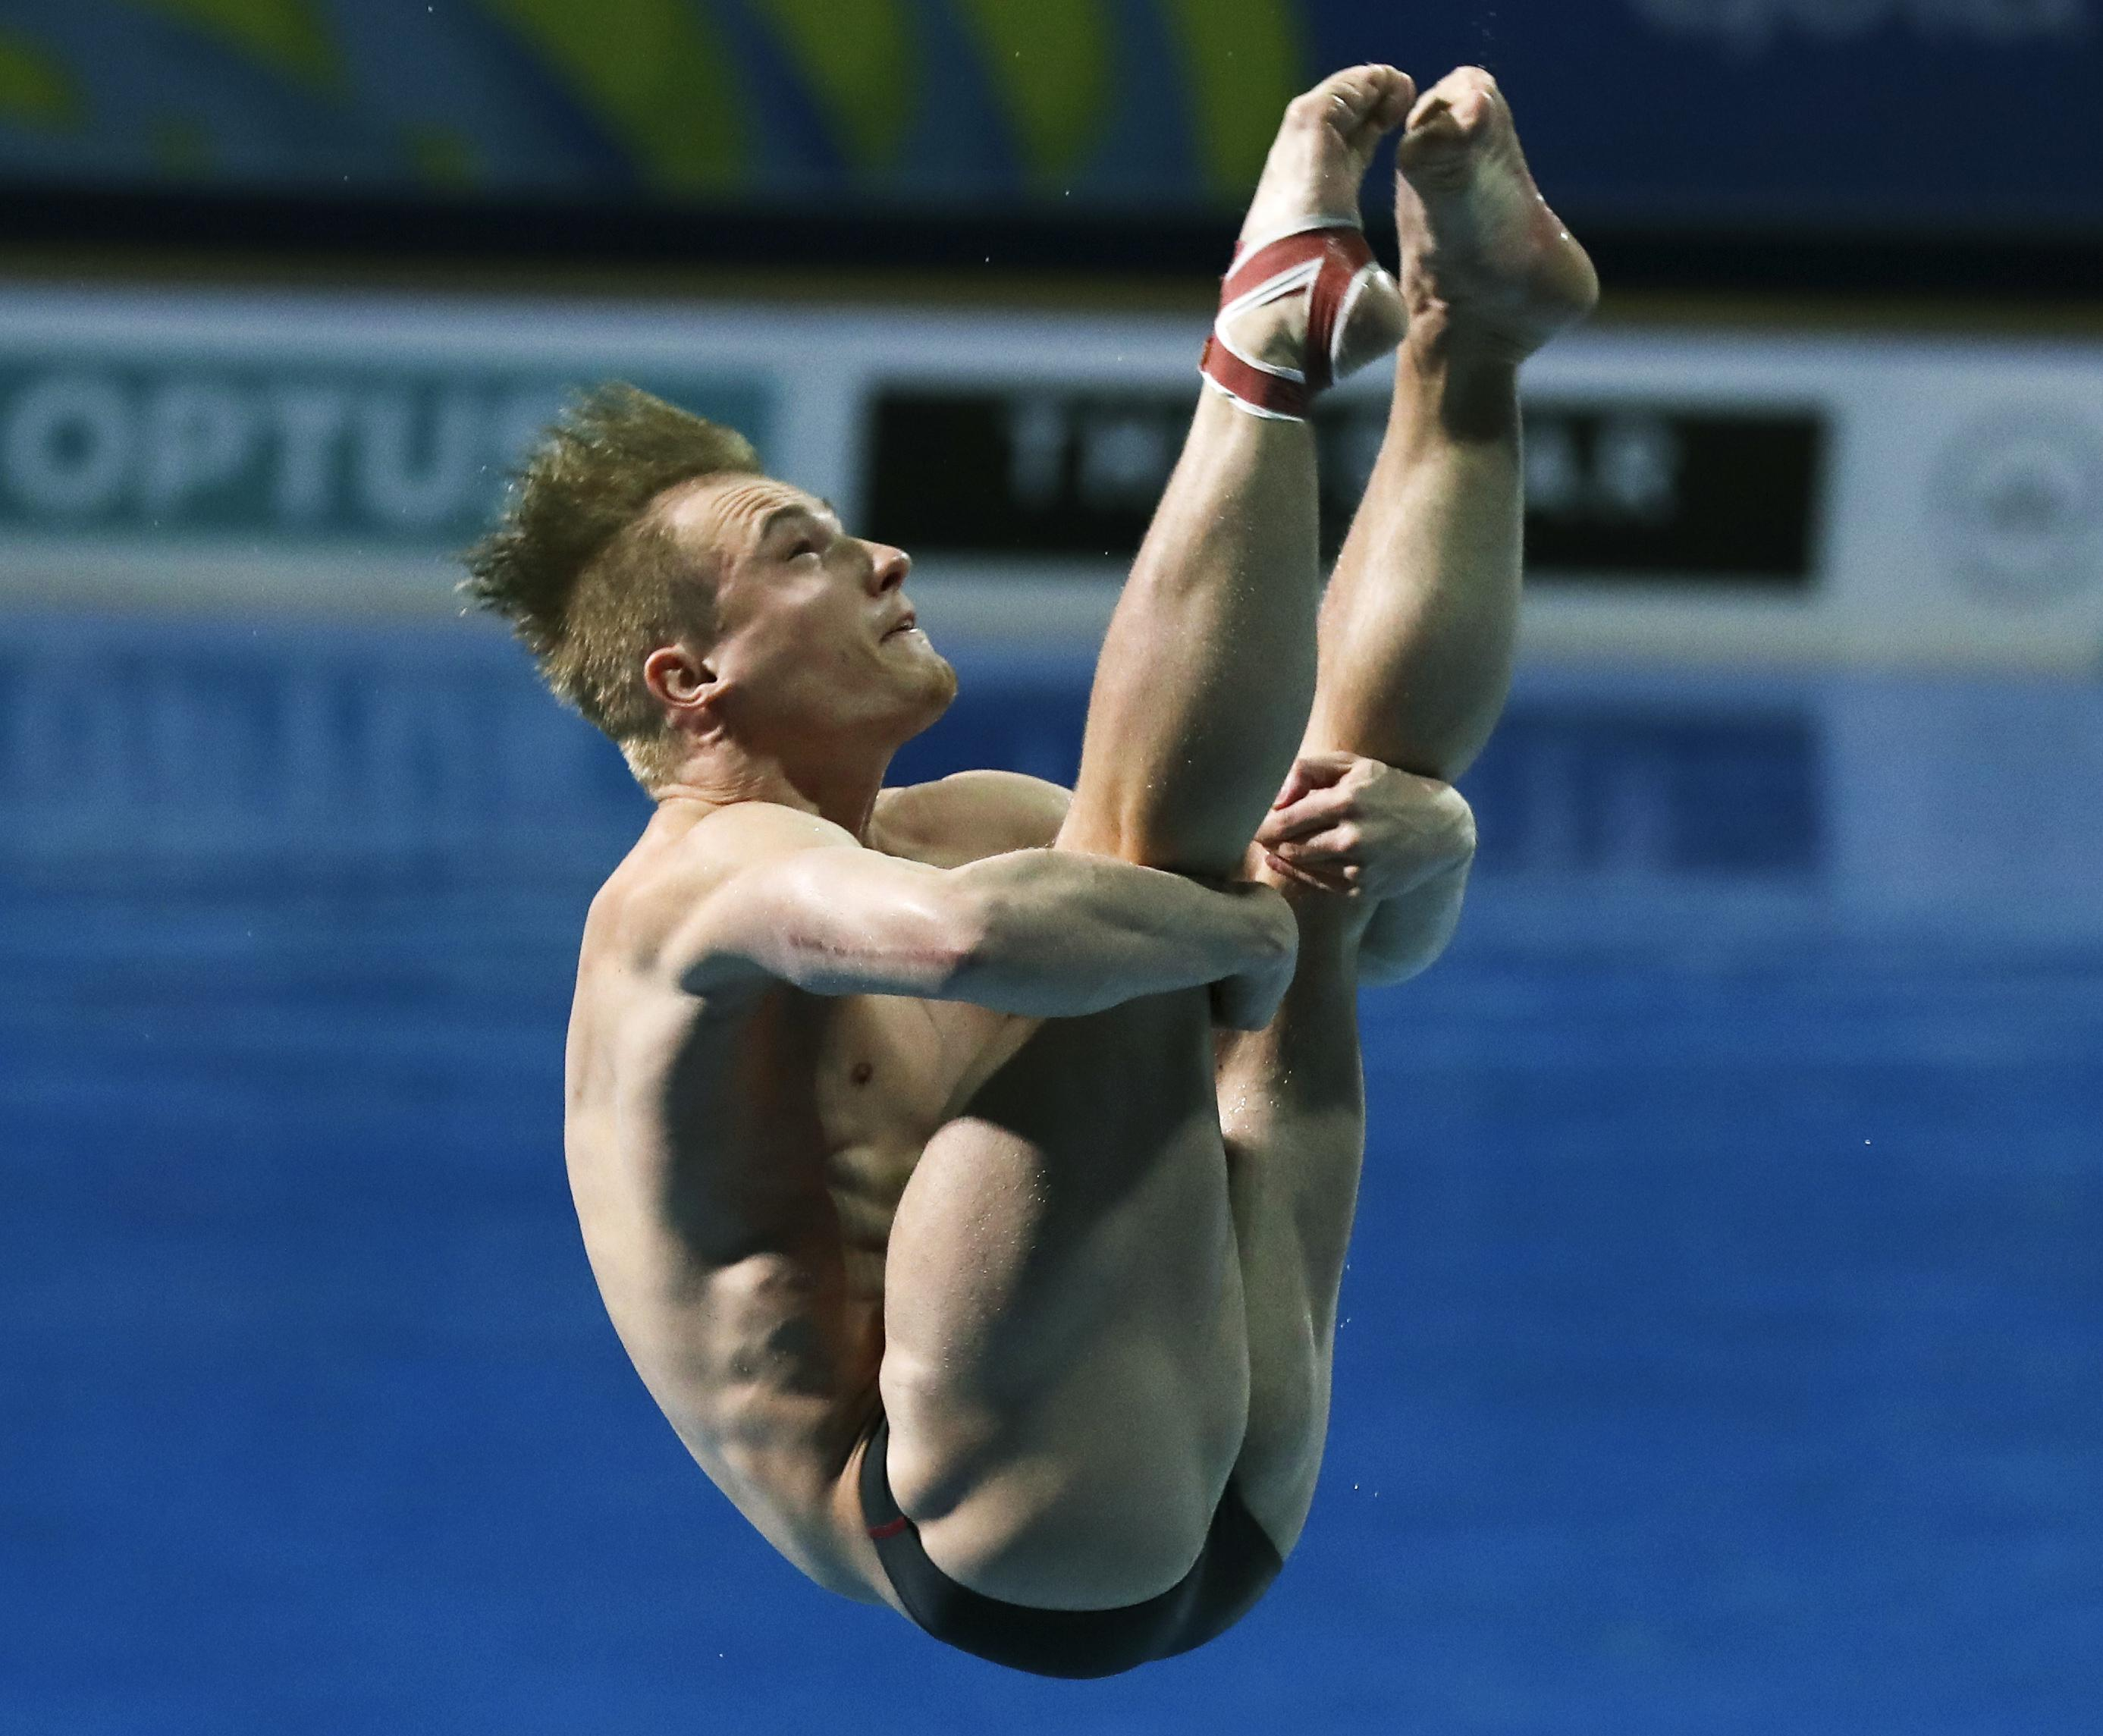 Laugher on his way to victory in the 1mspringboard final